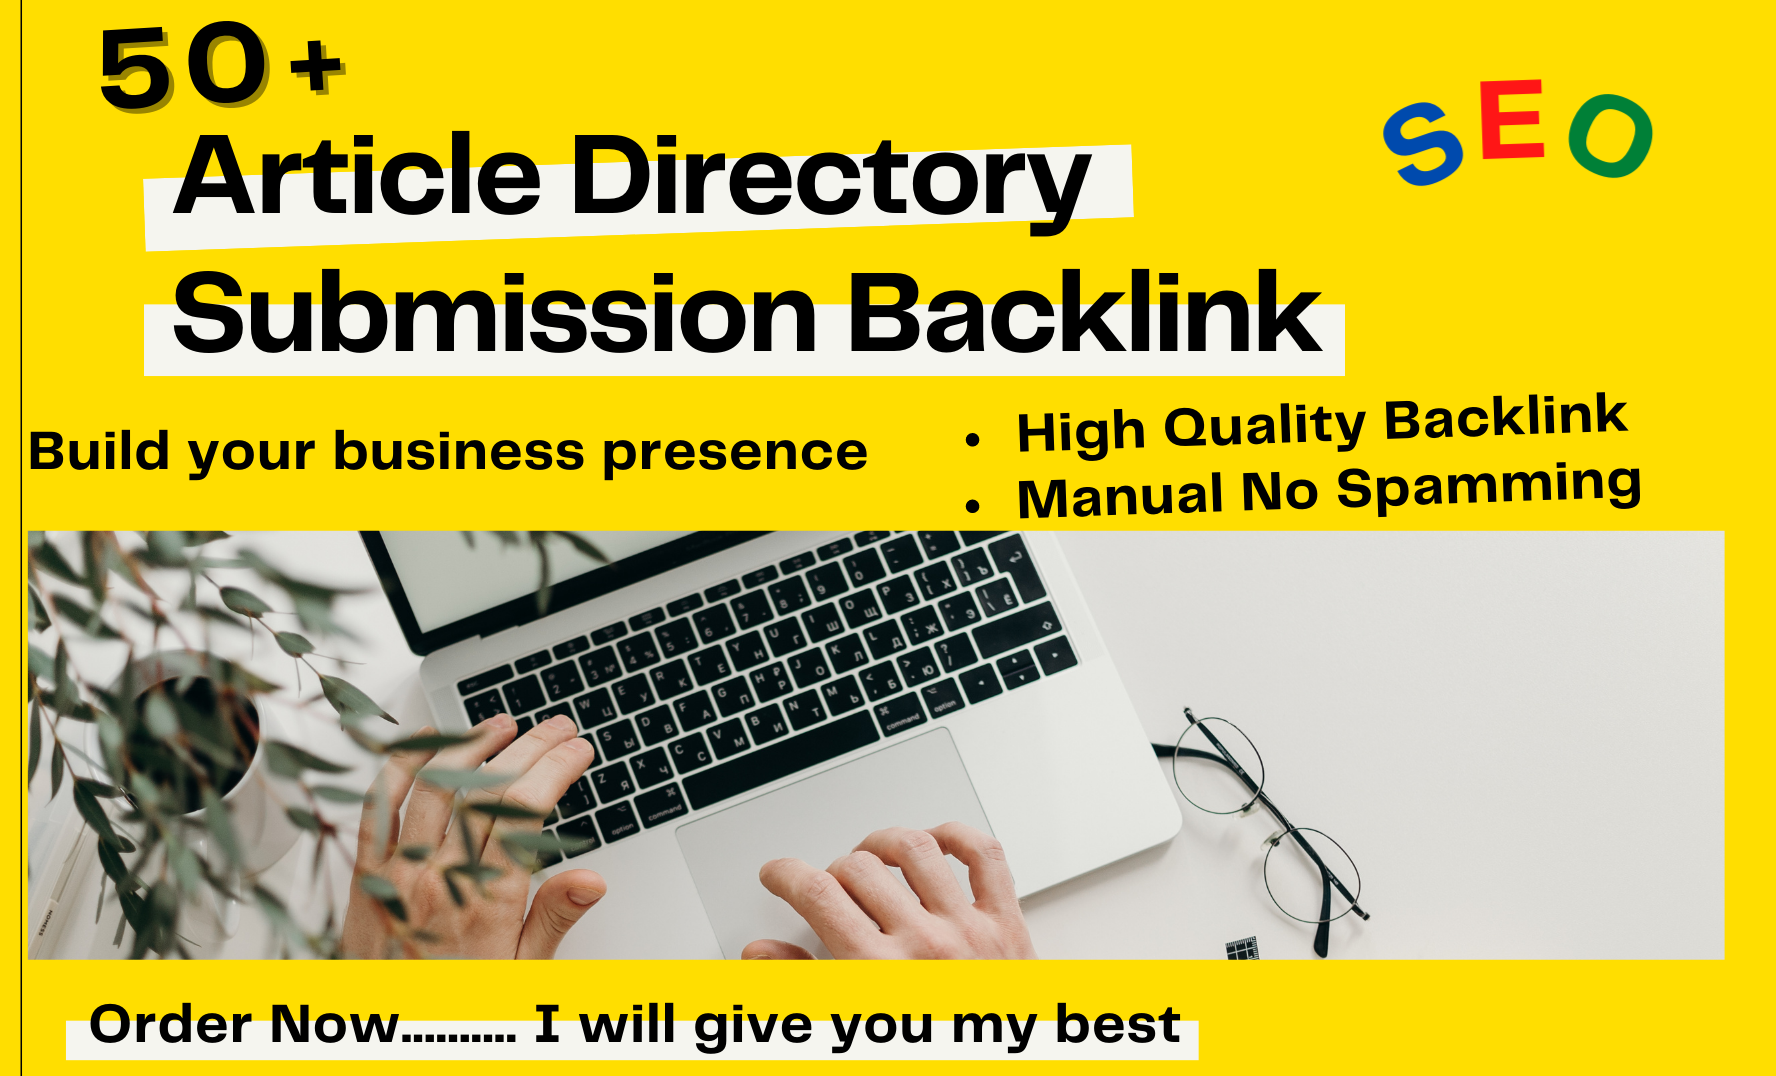 I Will Create 50+ Article Directory Submission backlinks - Top Google Ranking DA & PA Domain